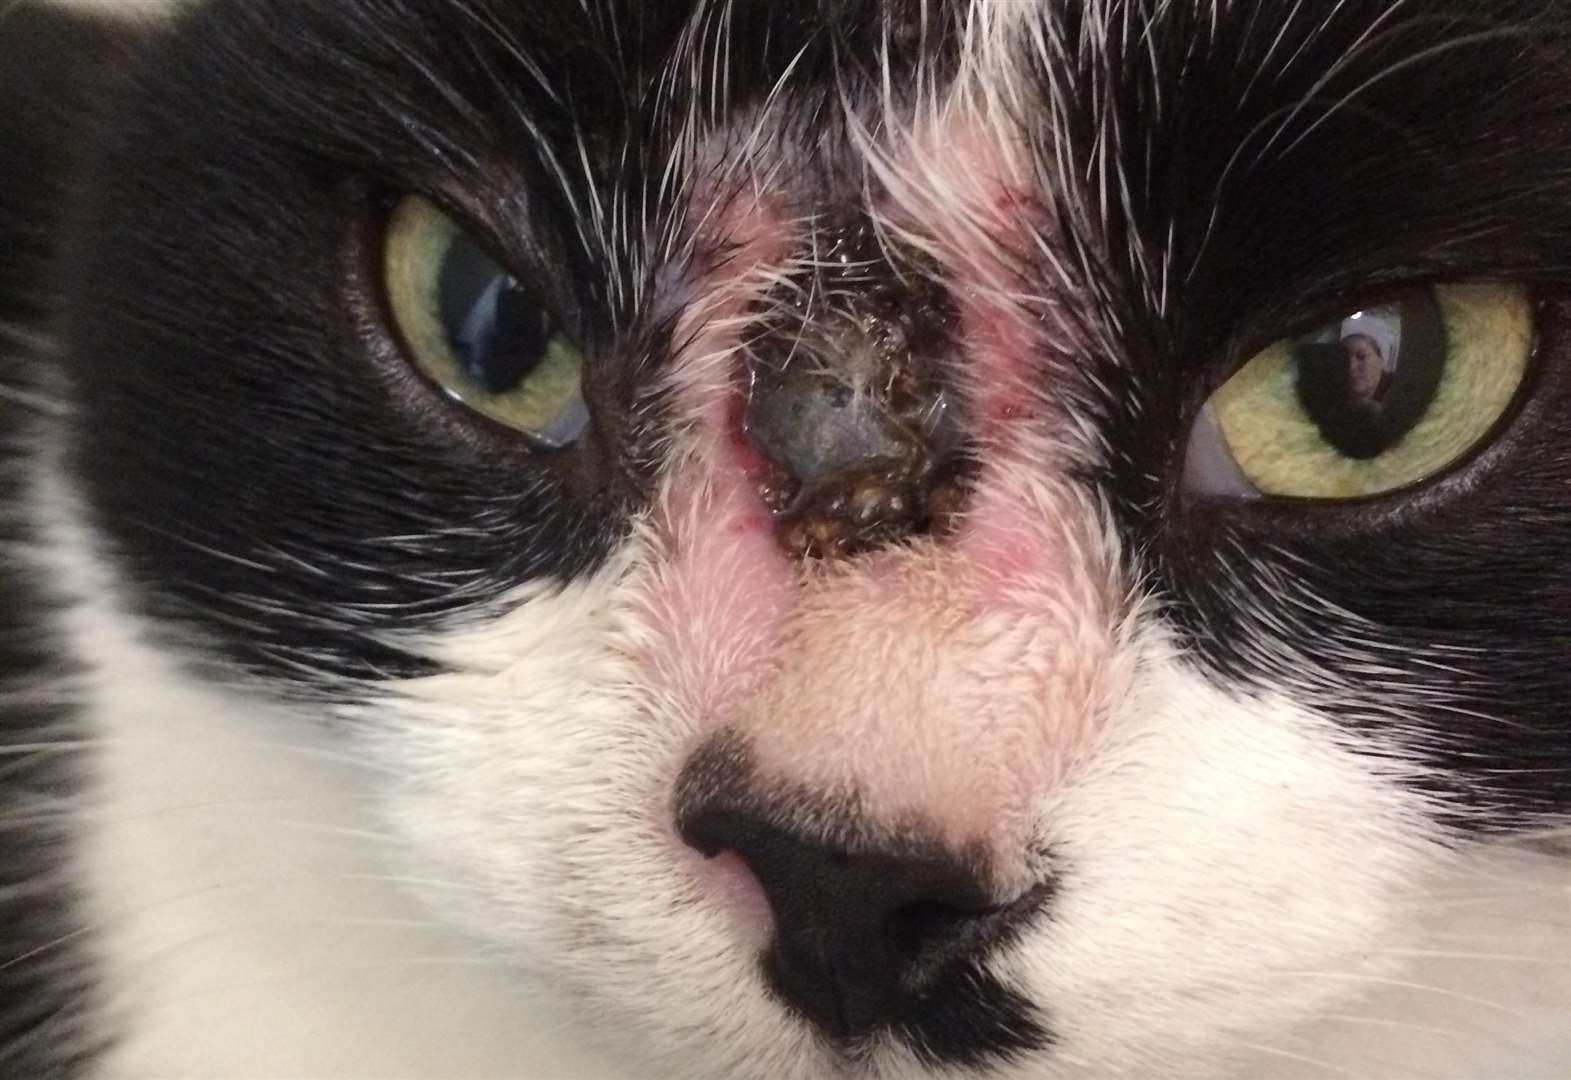 Cat shot in face with catapult